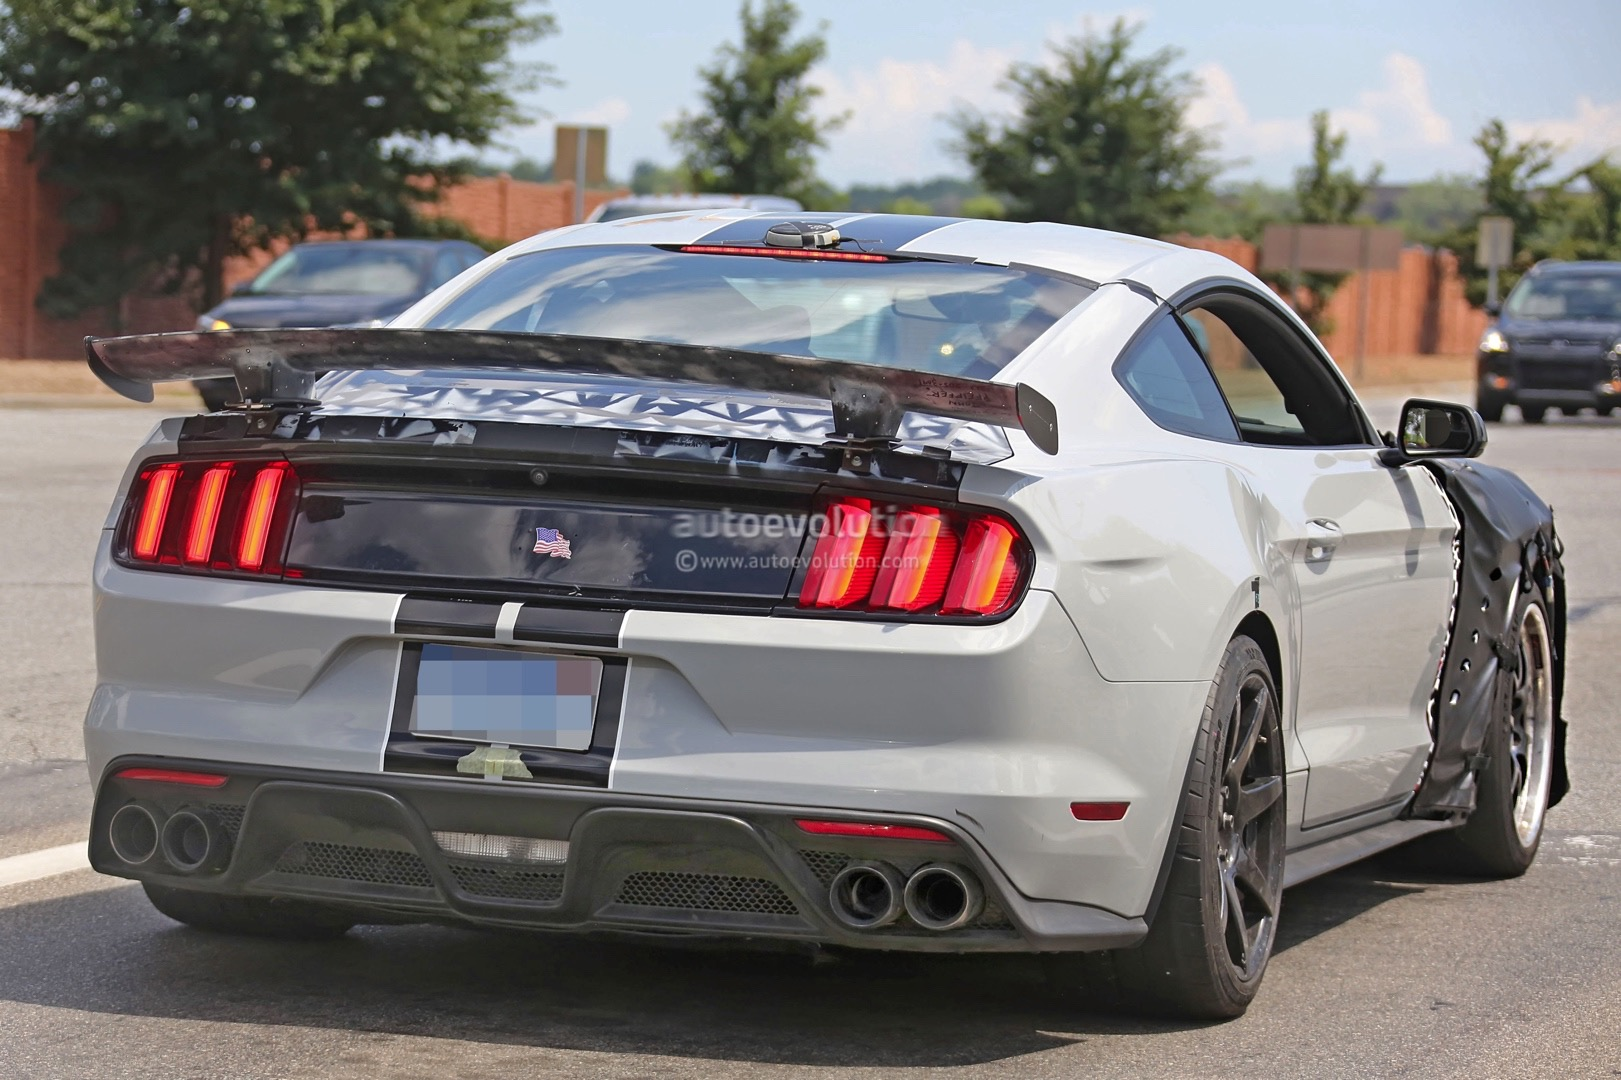 Could This Car Be The 2018 Ford Mustang Shelby Gt500 Or The Rumored